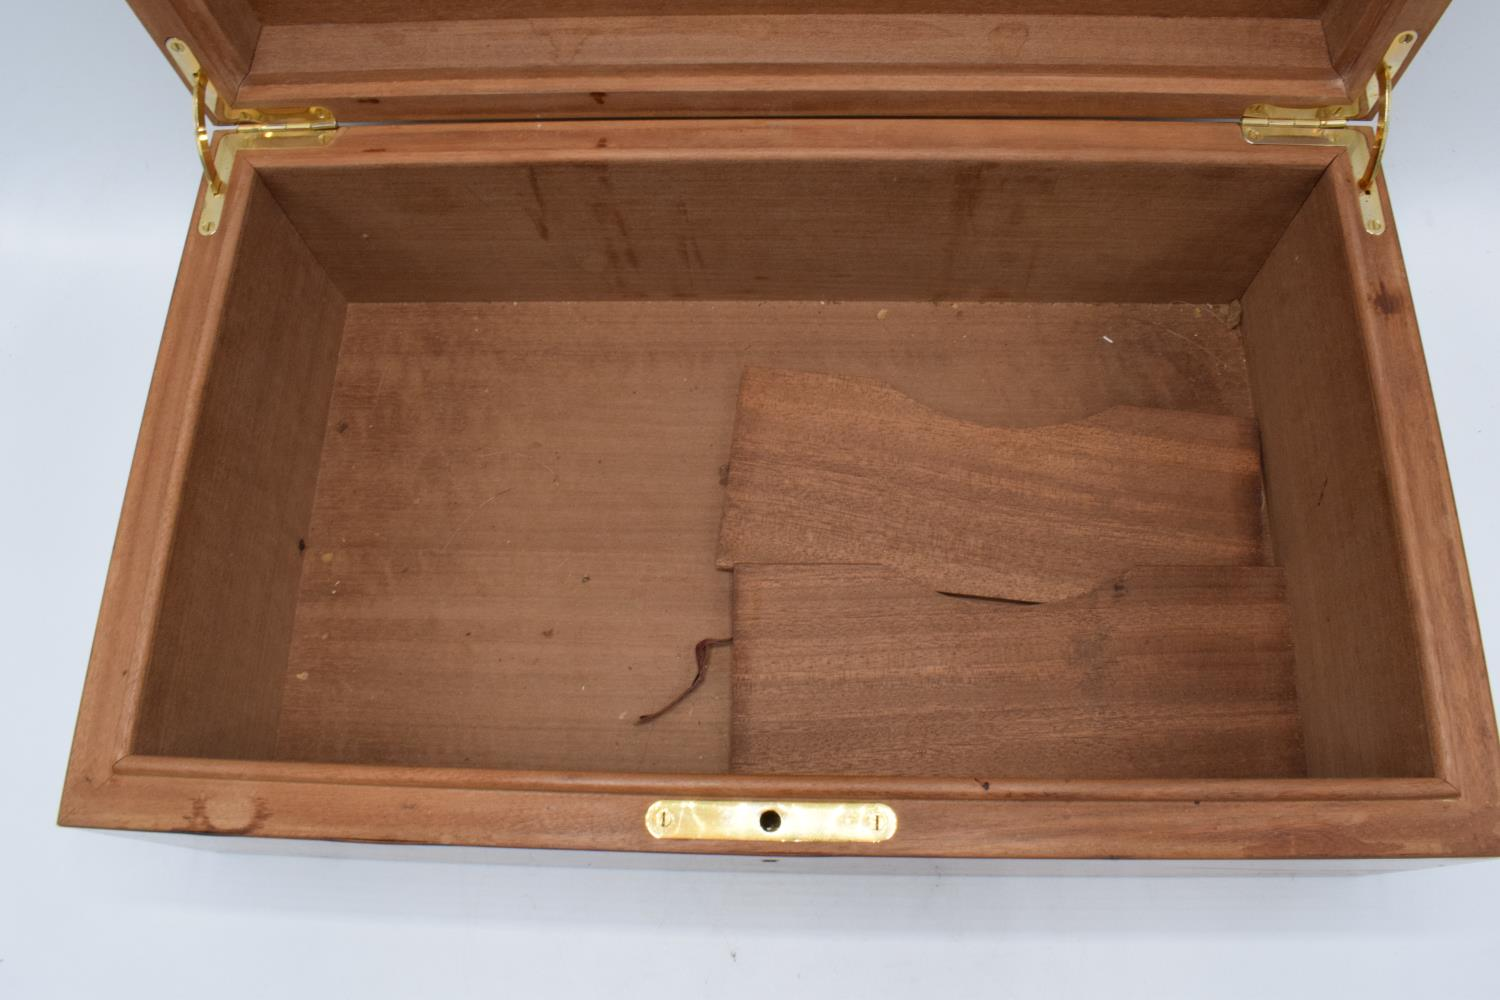 A modern veneered wooden cigar humidor with brass fixtures and fitting with a working lock and - Image 5 of 7